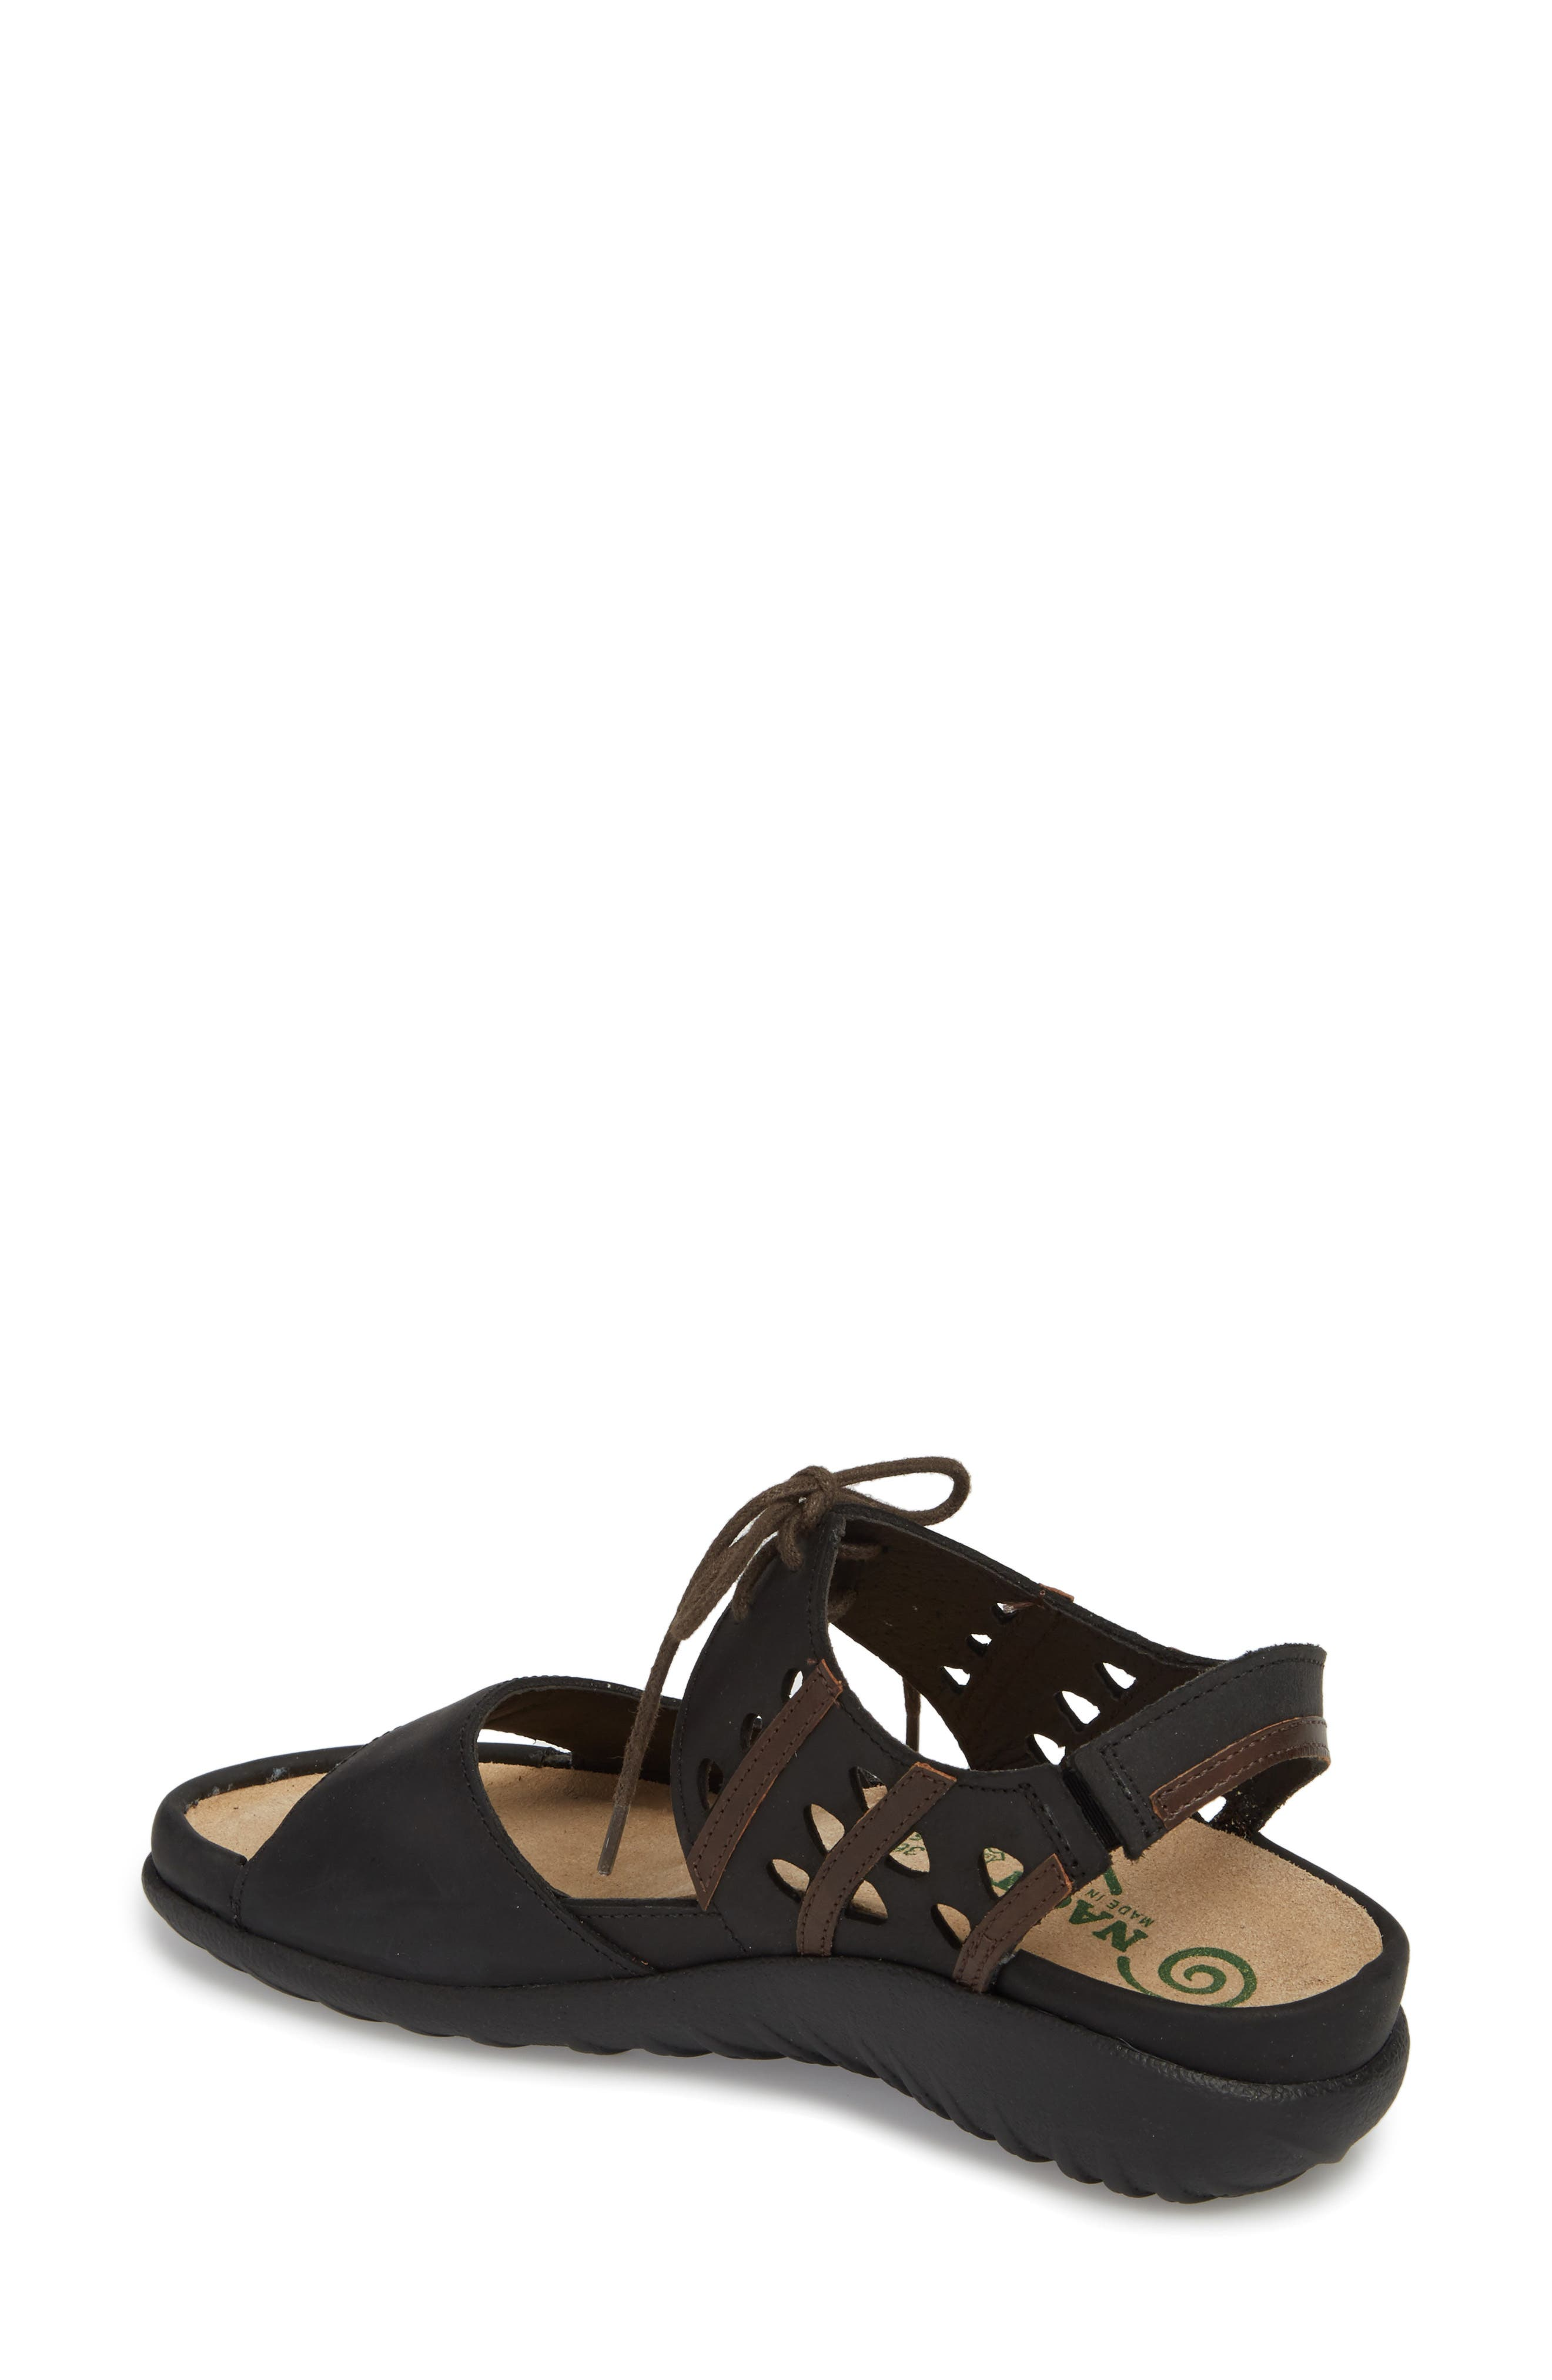 NAOT, Mangere Sandal, Alternate thumbnail 2, color, OILY COAL NUBUCK